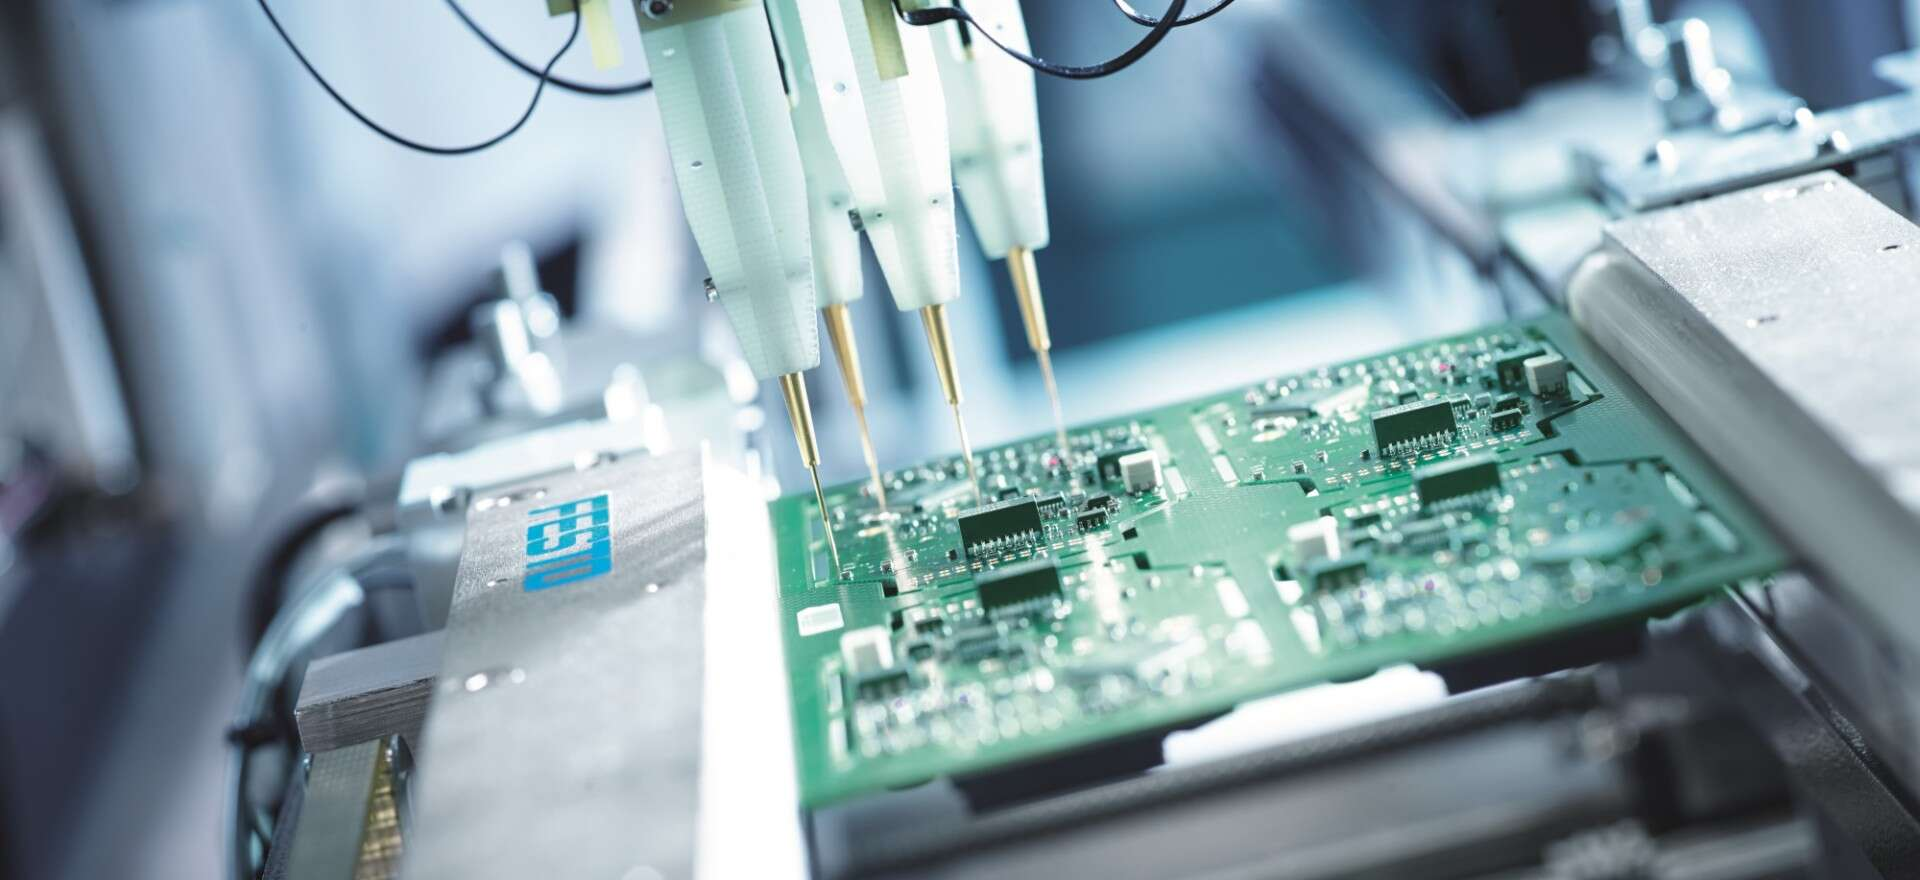 Testing in the electronics industry